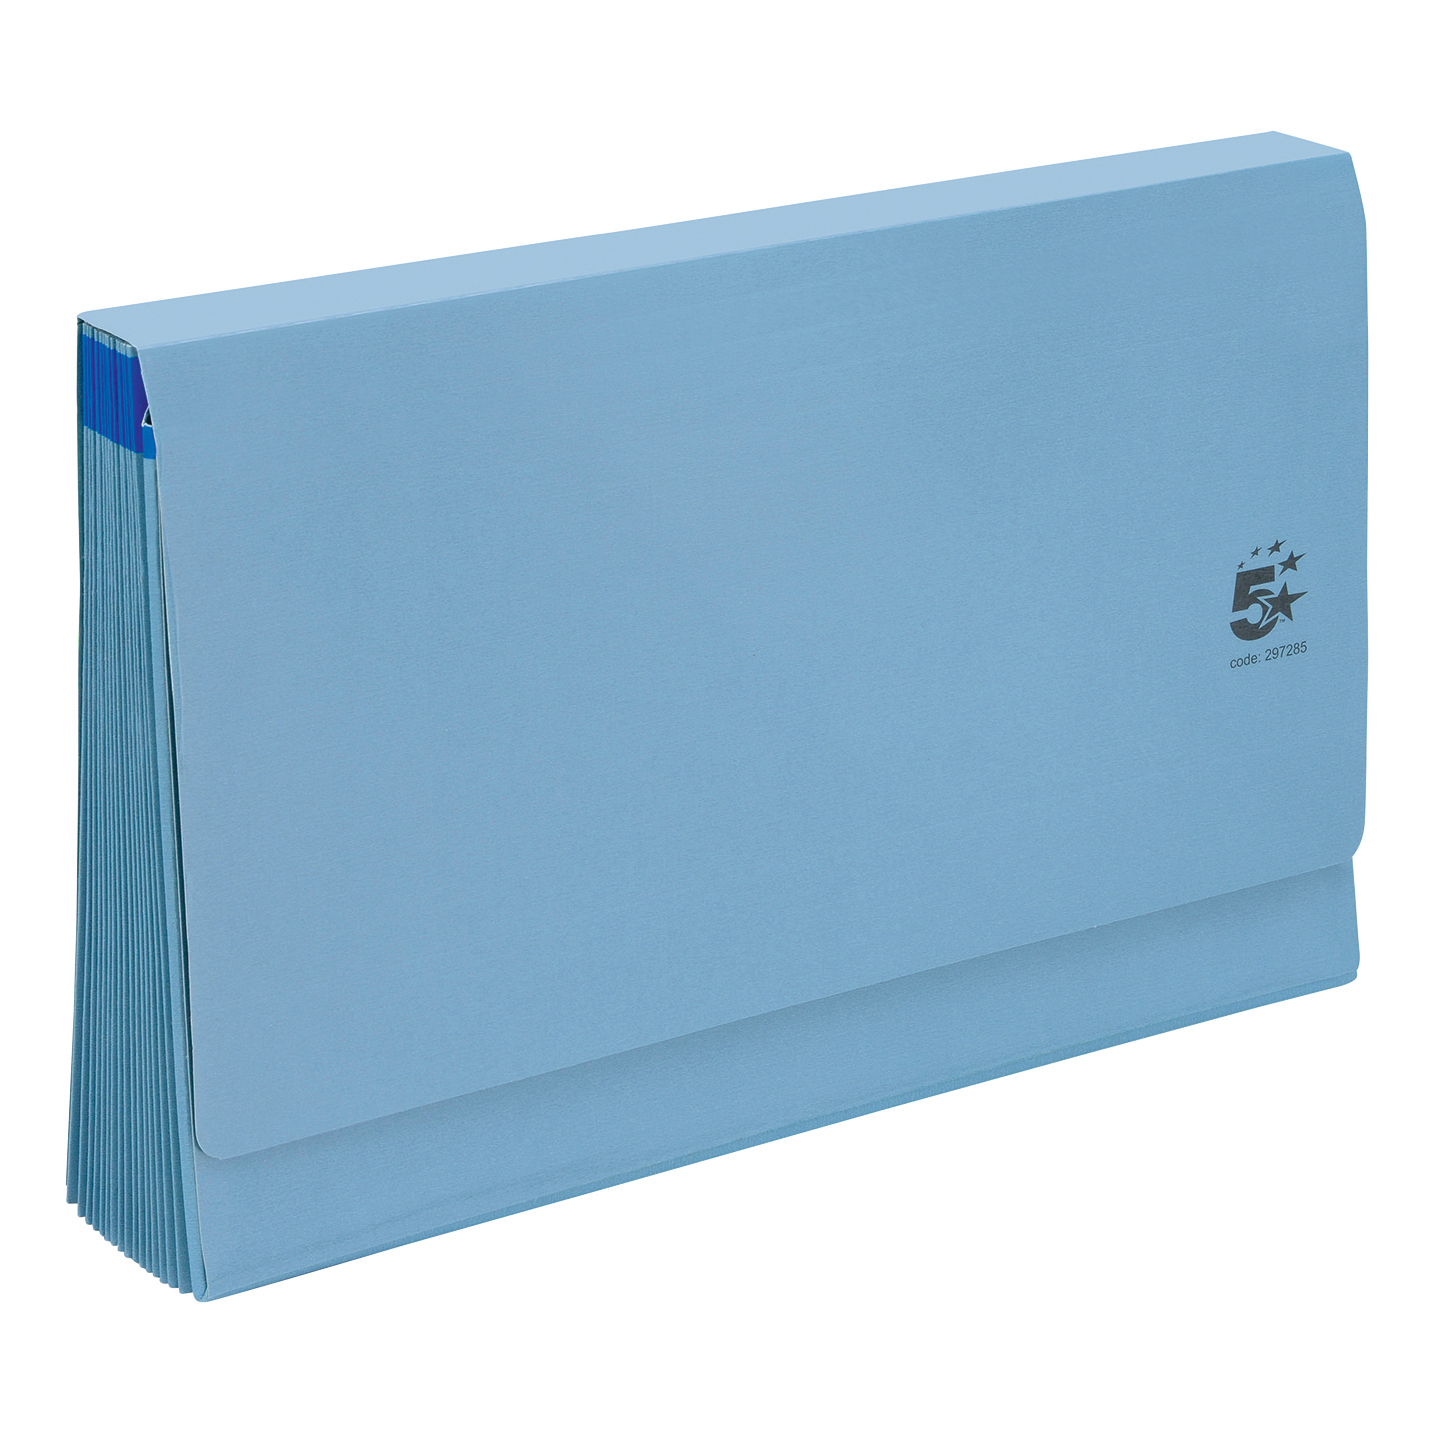 5 Star Premier De Luxe Expanding File with Flap 16 Pockets A-Z 12 Months 1-31 Foolscap Blue